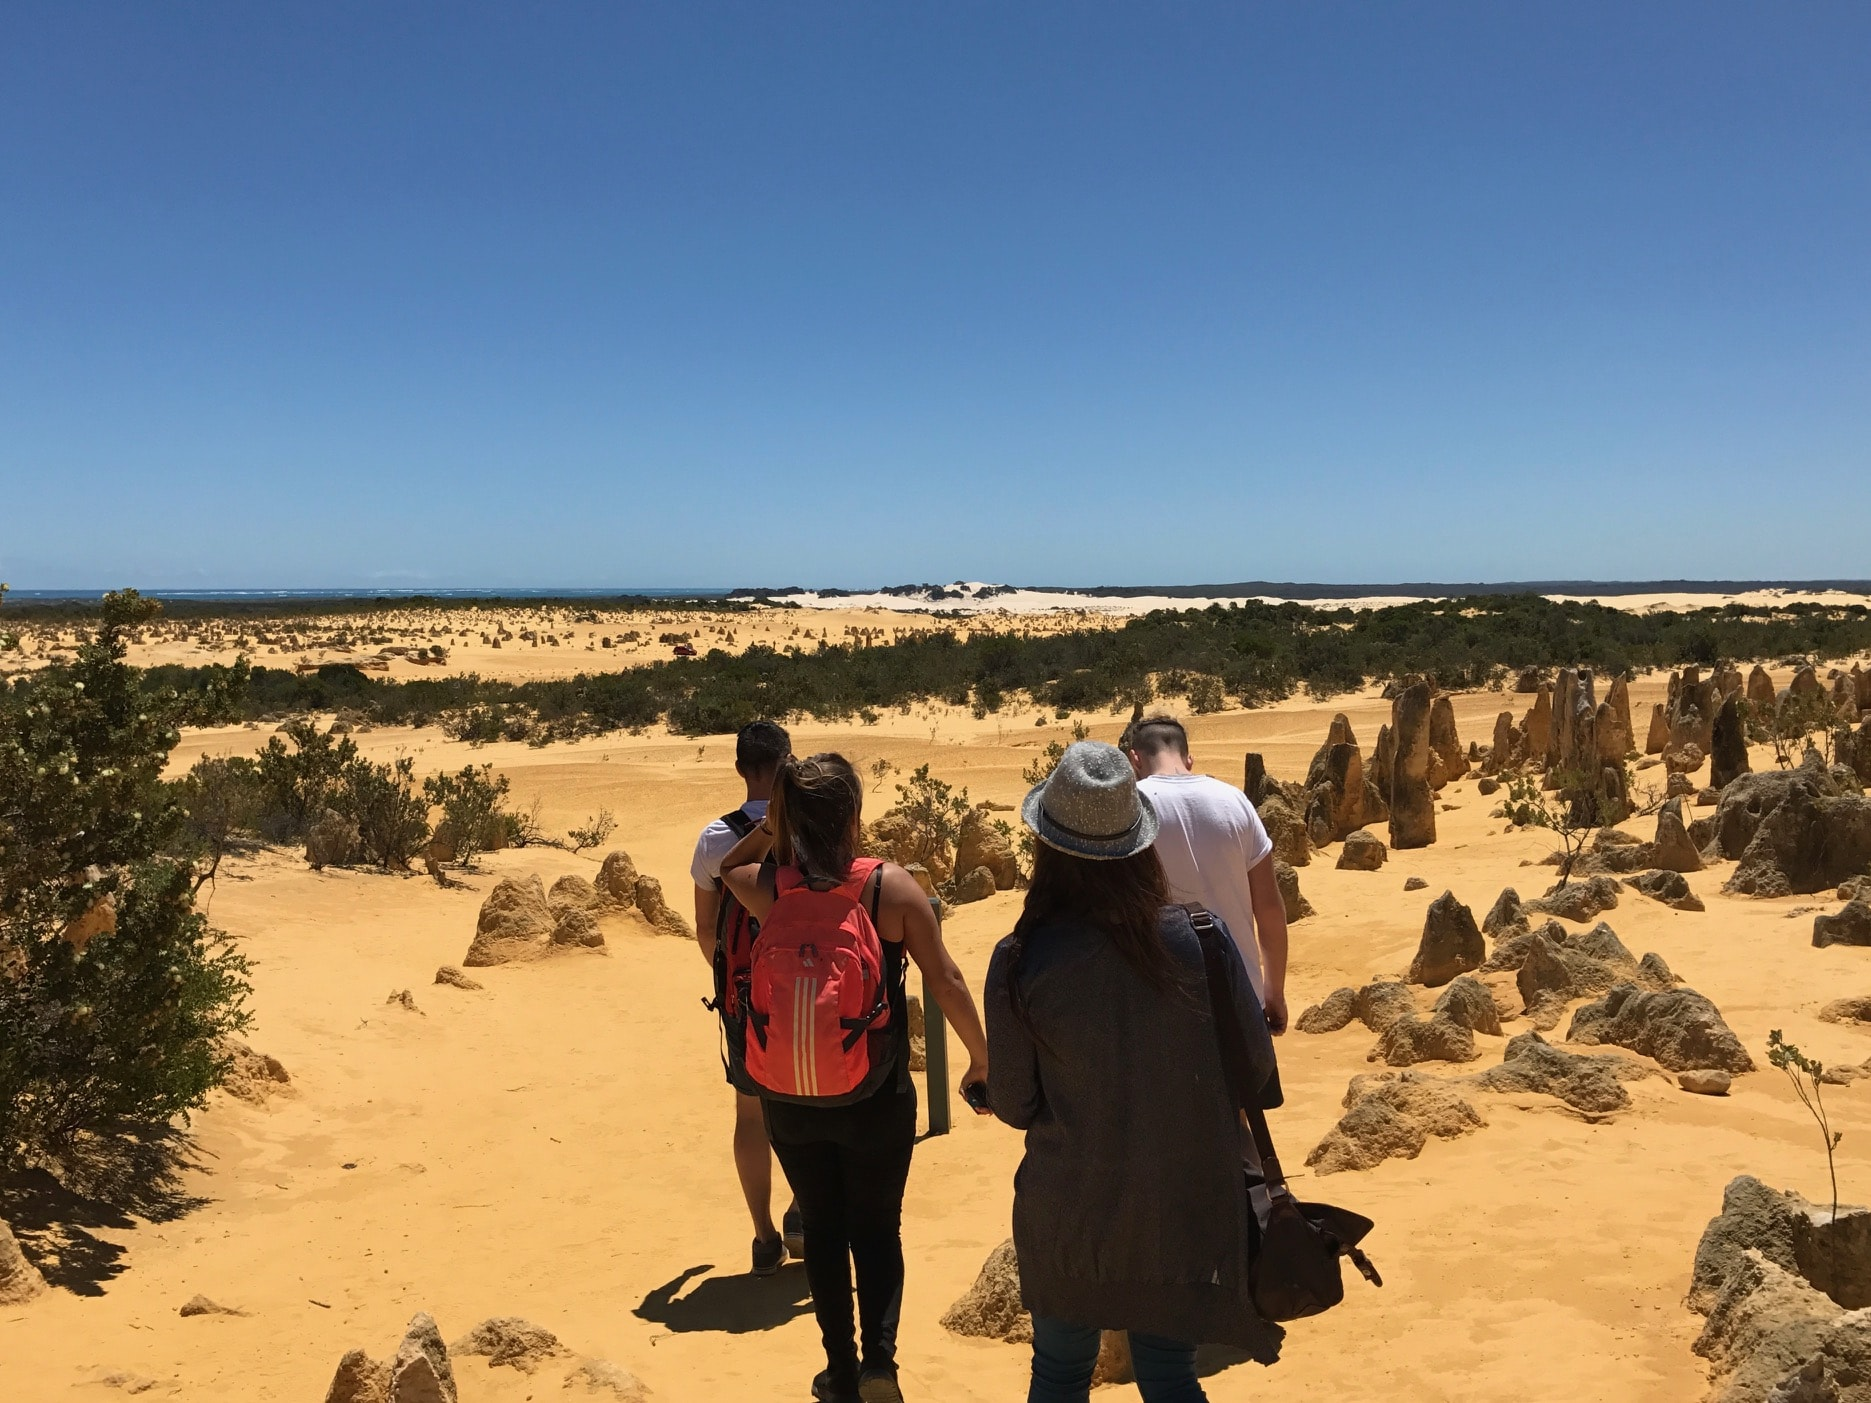 pinnacle day tours from perth